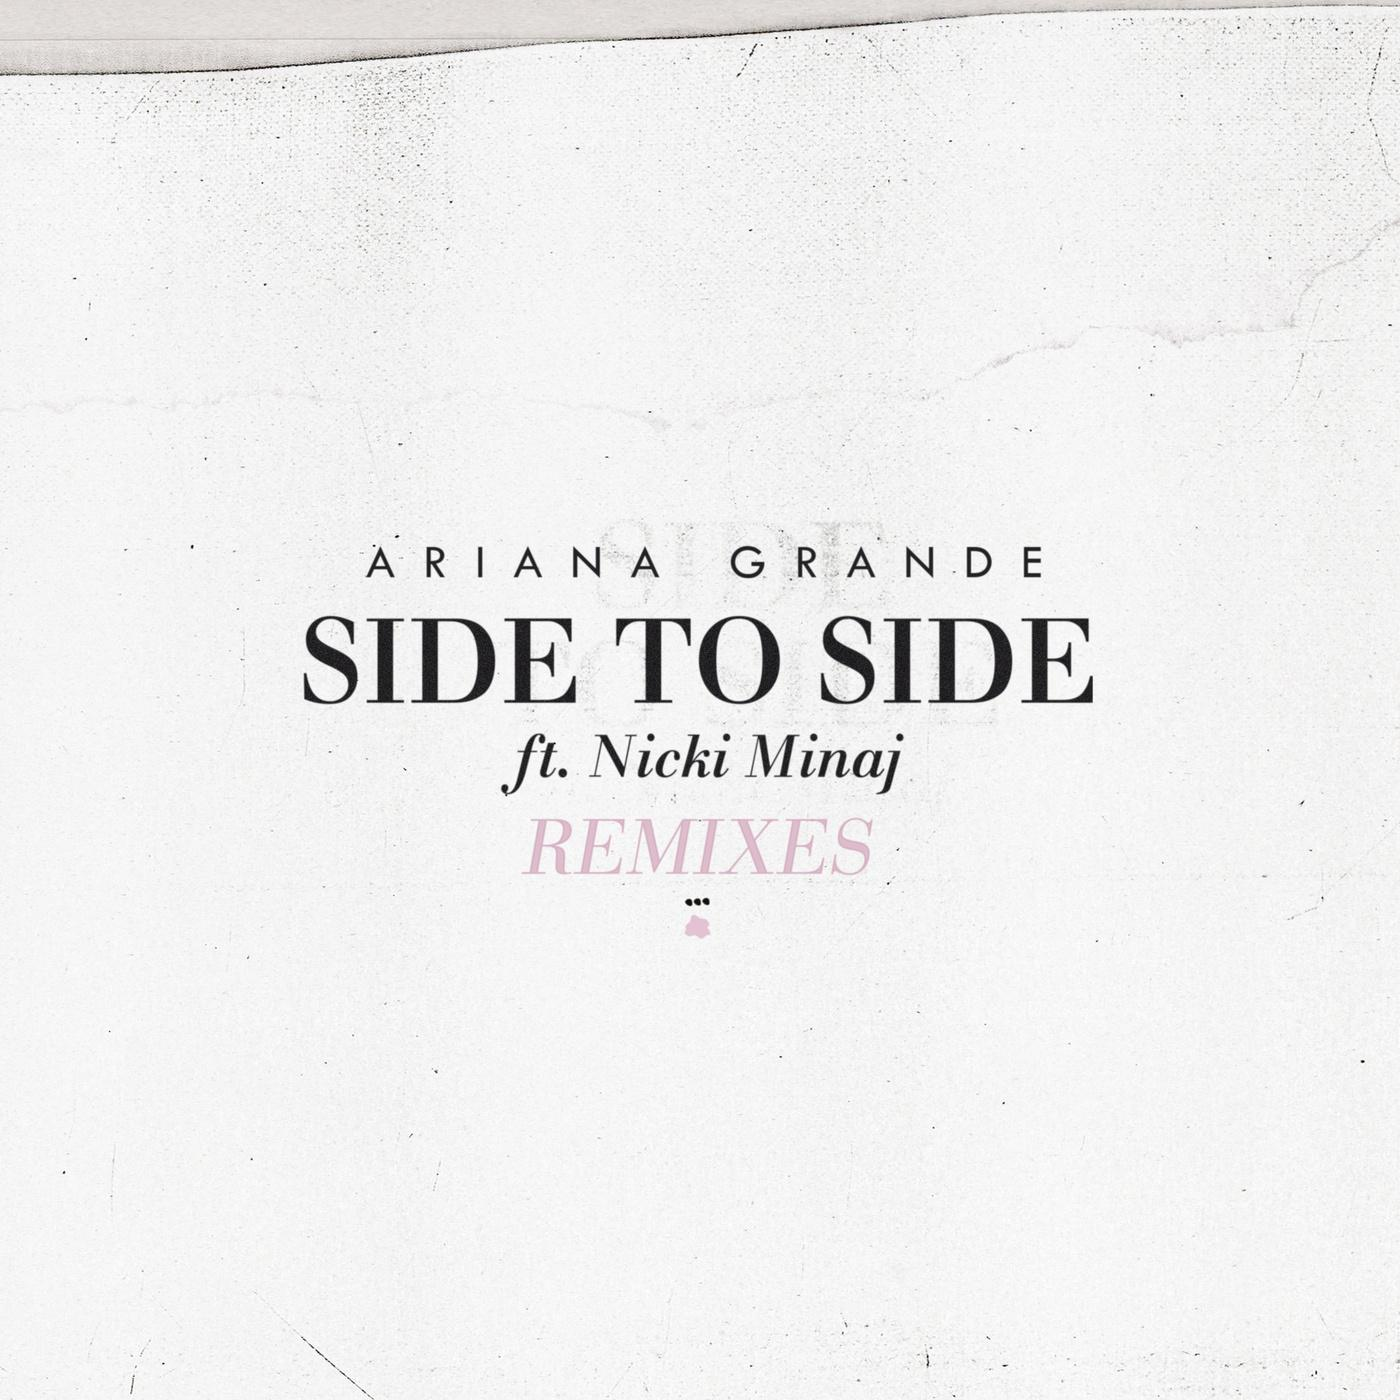 Side to Side (Remixes)